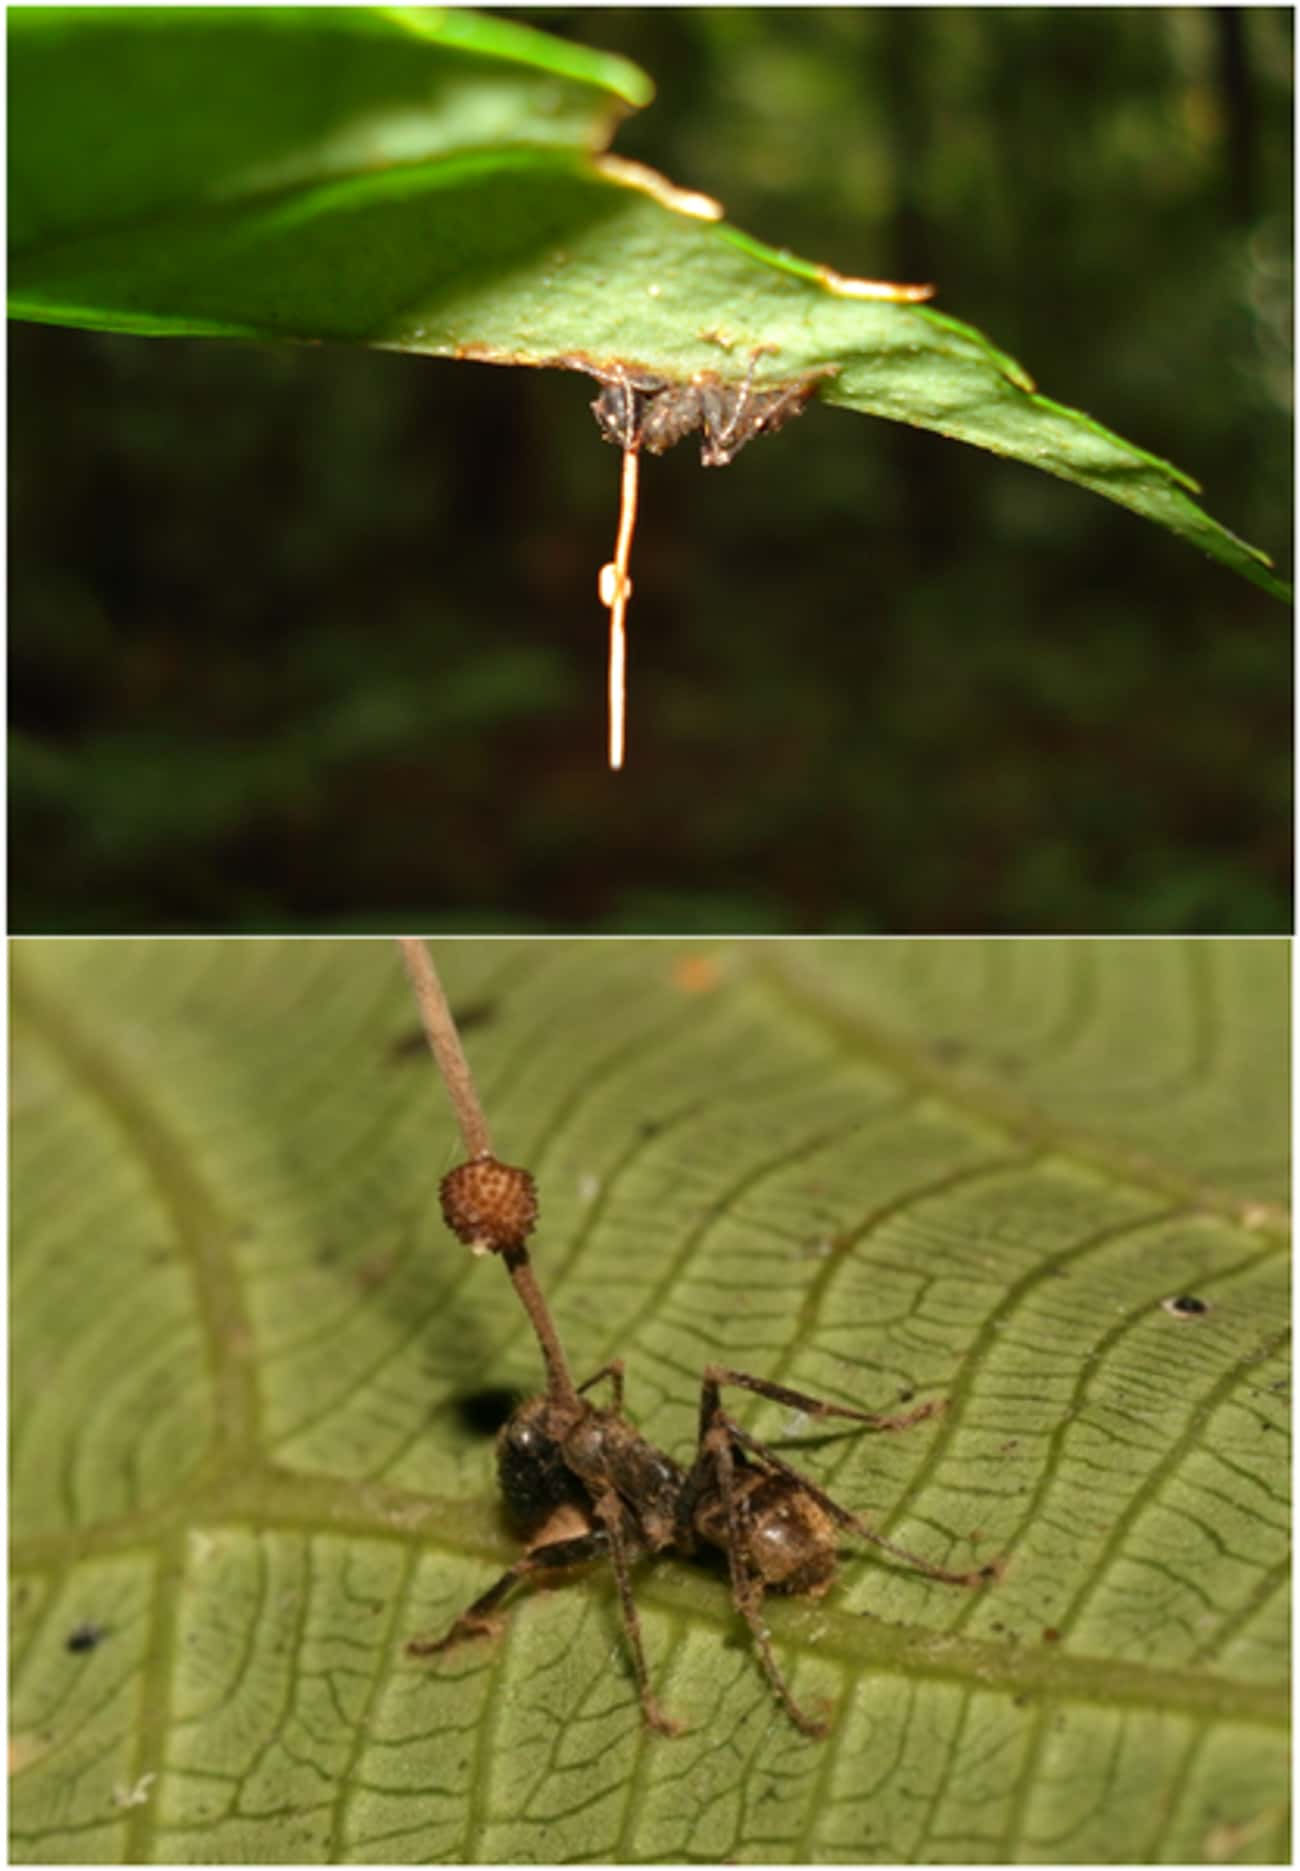 Zombie Ant Fungus is listed (or ranked) 1 on the list The Craziest Parasite Life Cycles